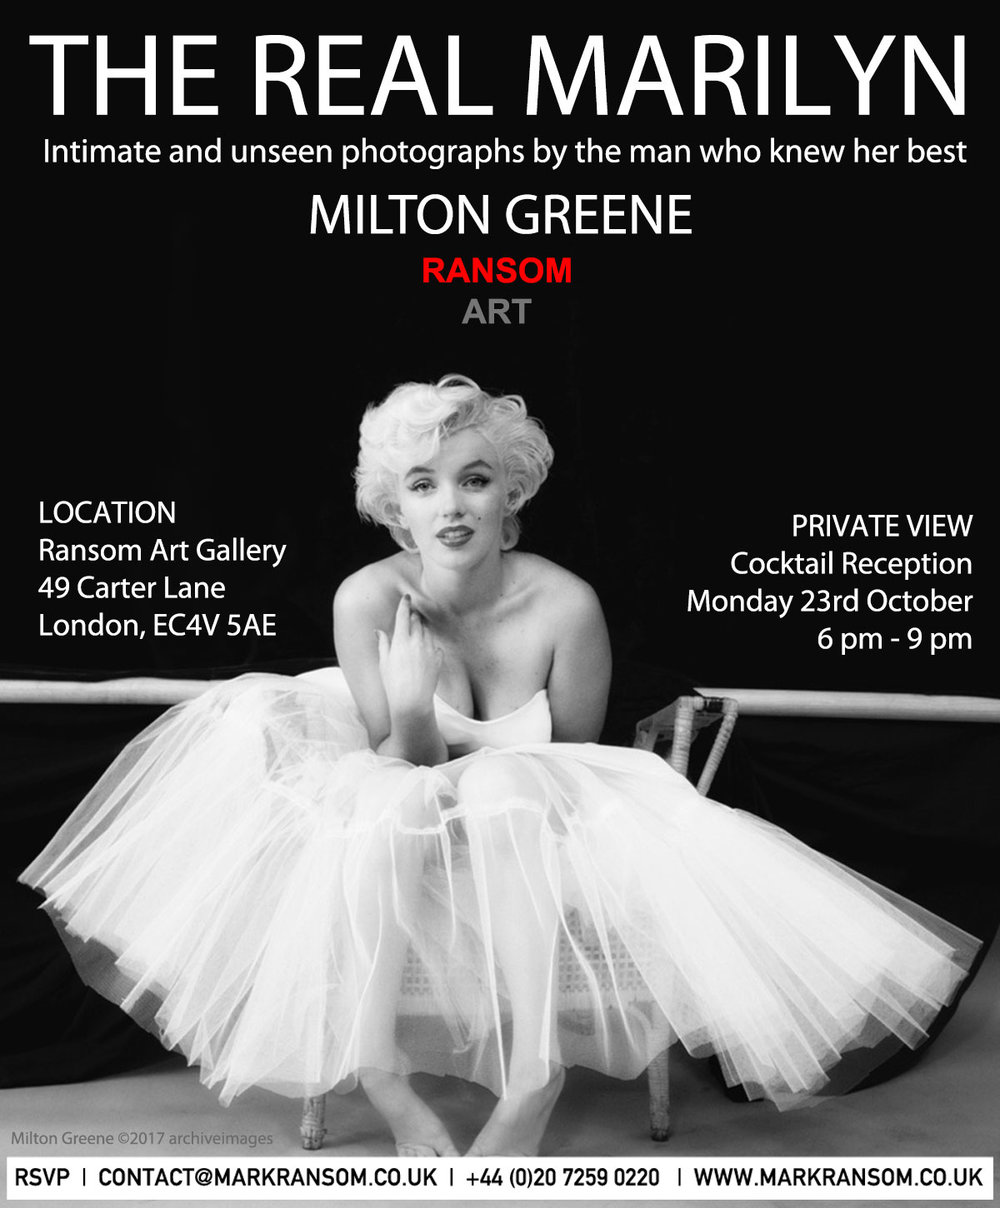 The-Real-Marilyn-by-Milton-Greene-Invitation-Ransom-Art-Gallery.jpg